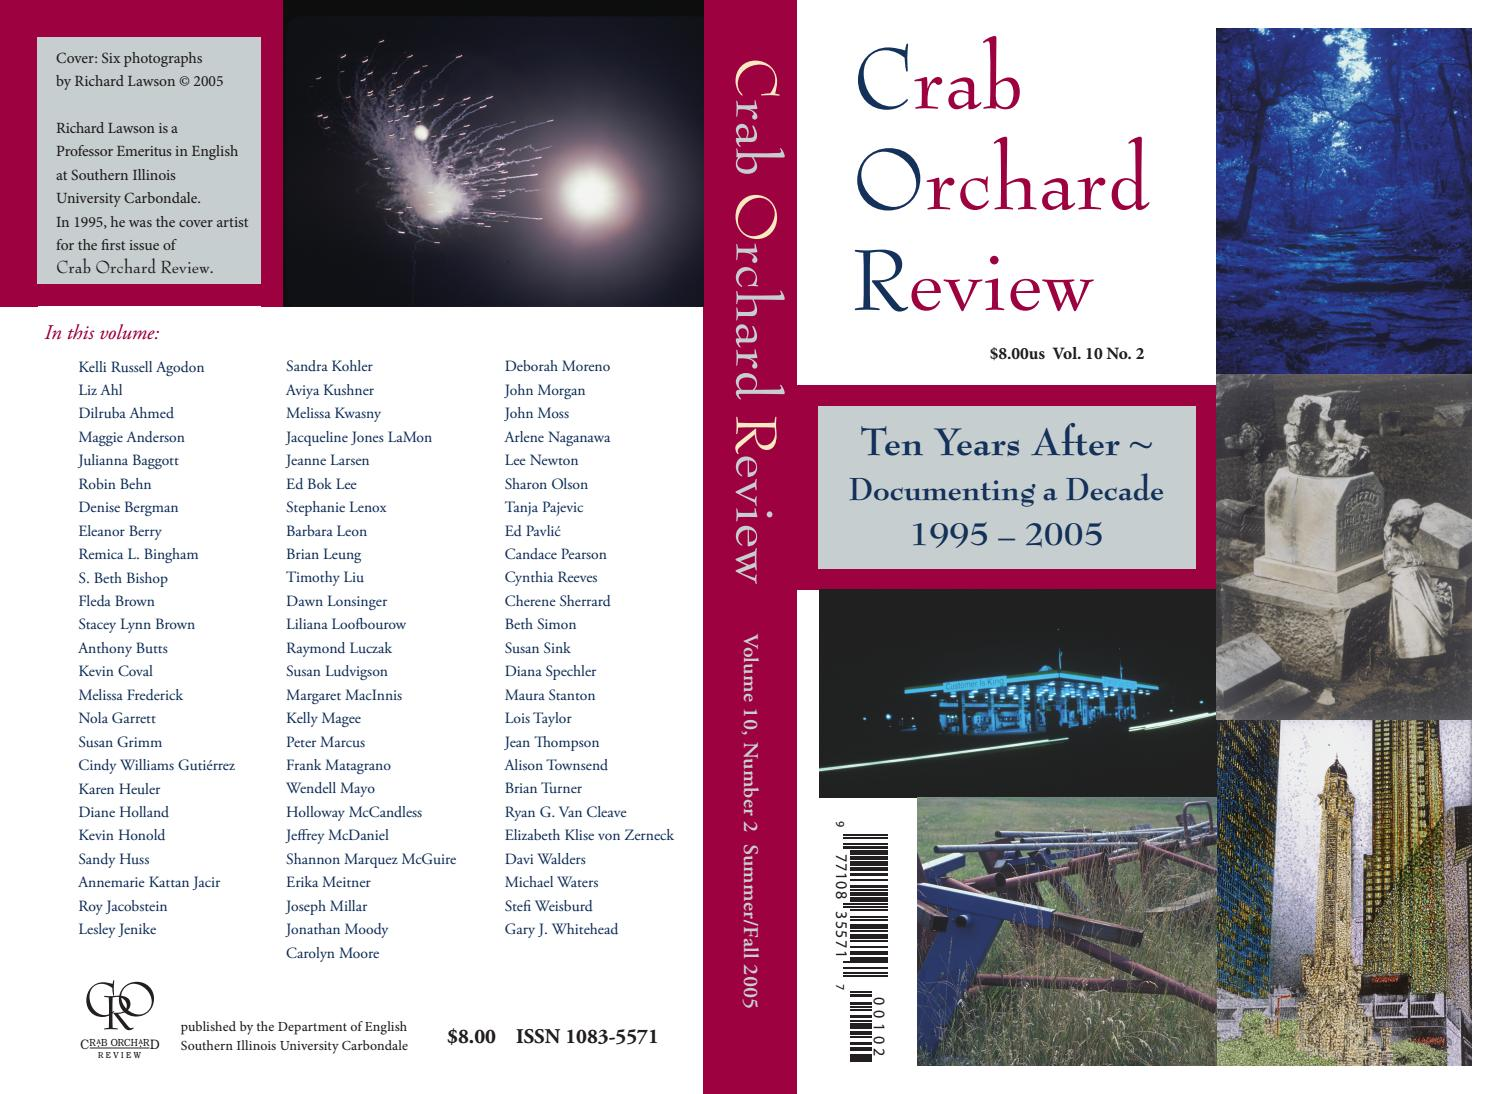 bb344c84787be Crab Orchard Review Vol 10 No 2 S/F 2005 by Crab Orchard Review - issuu